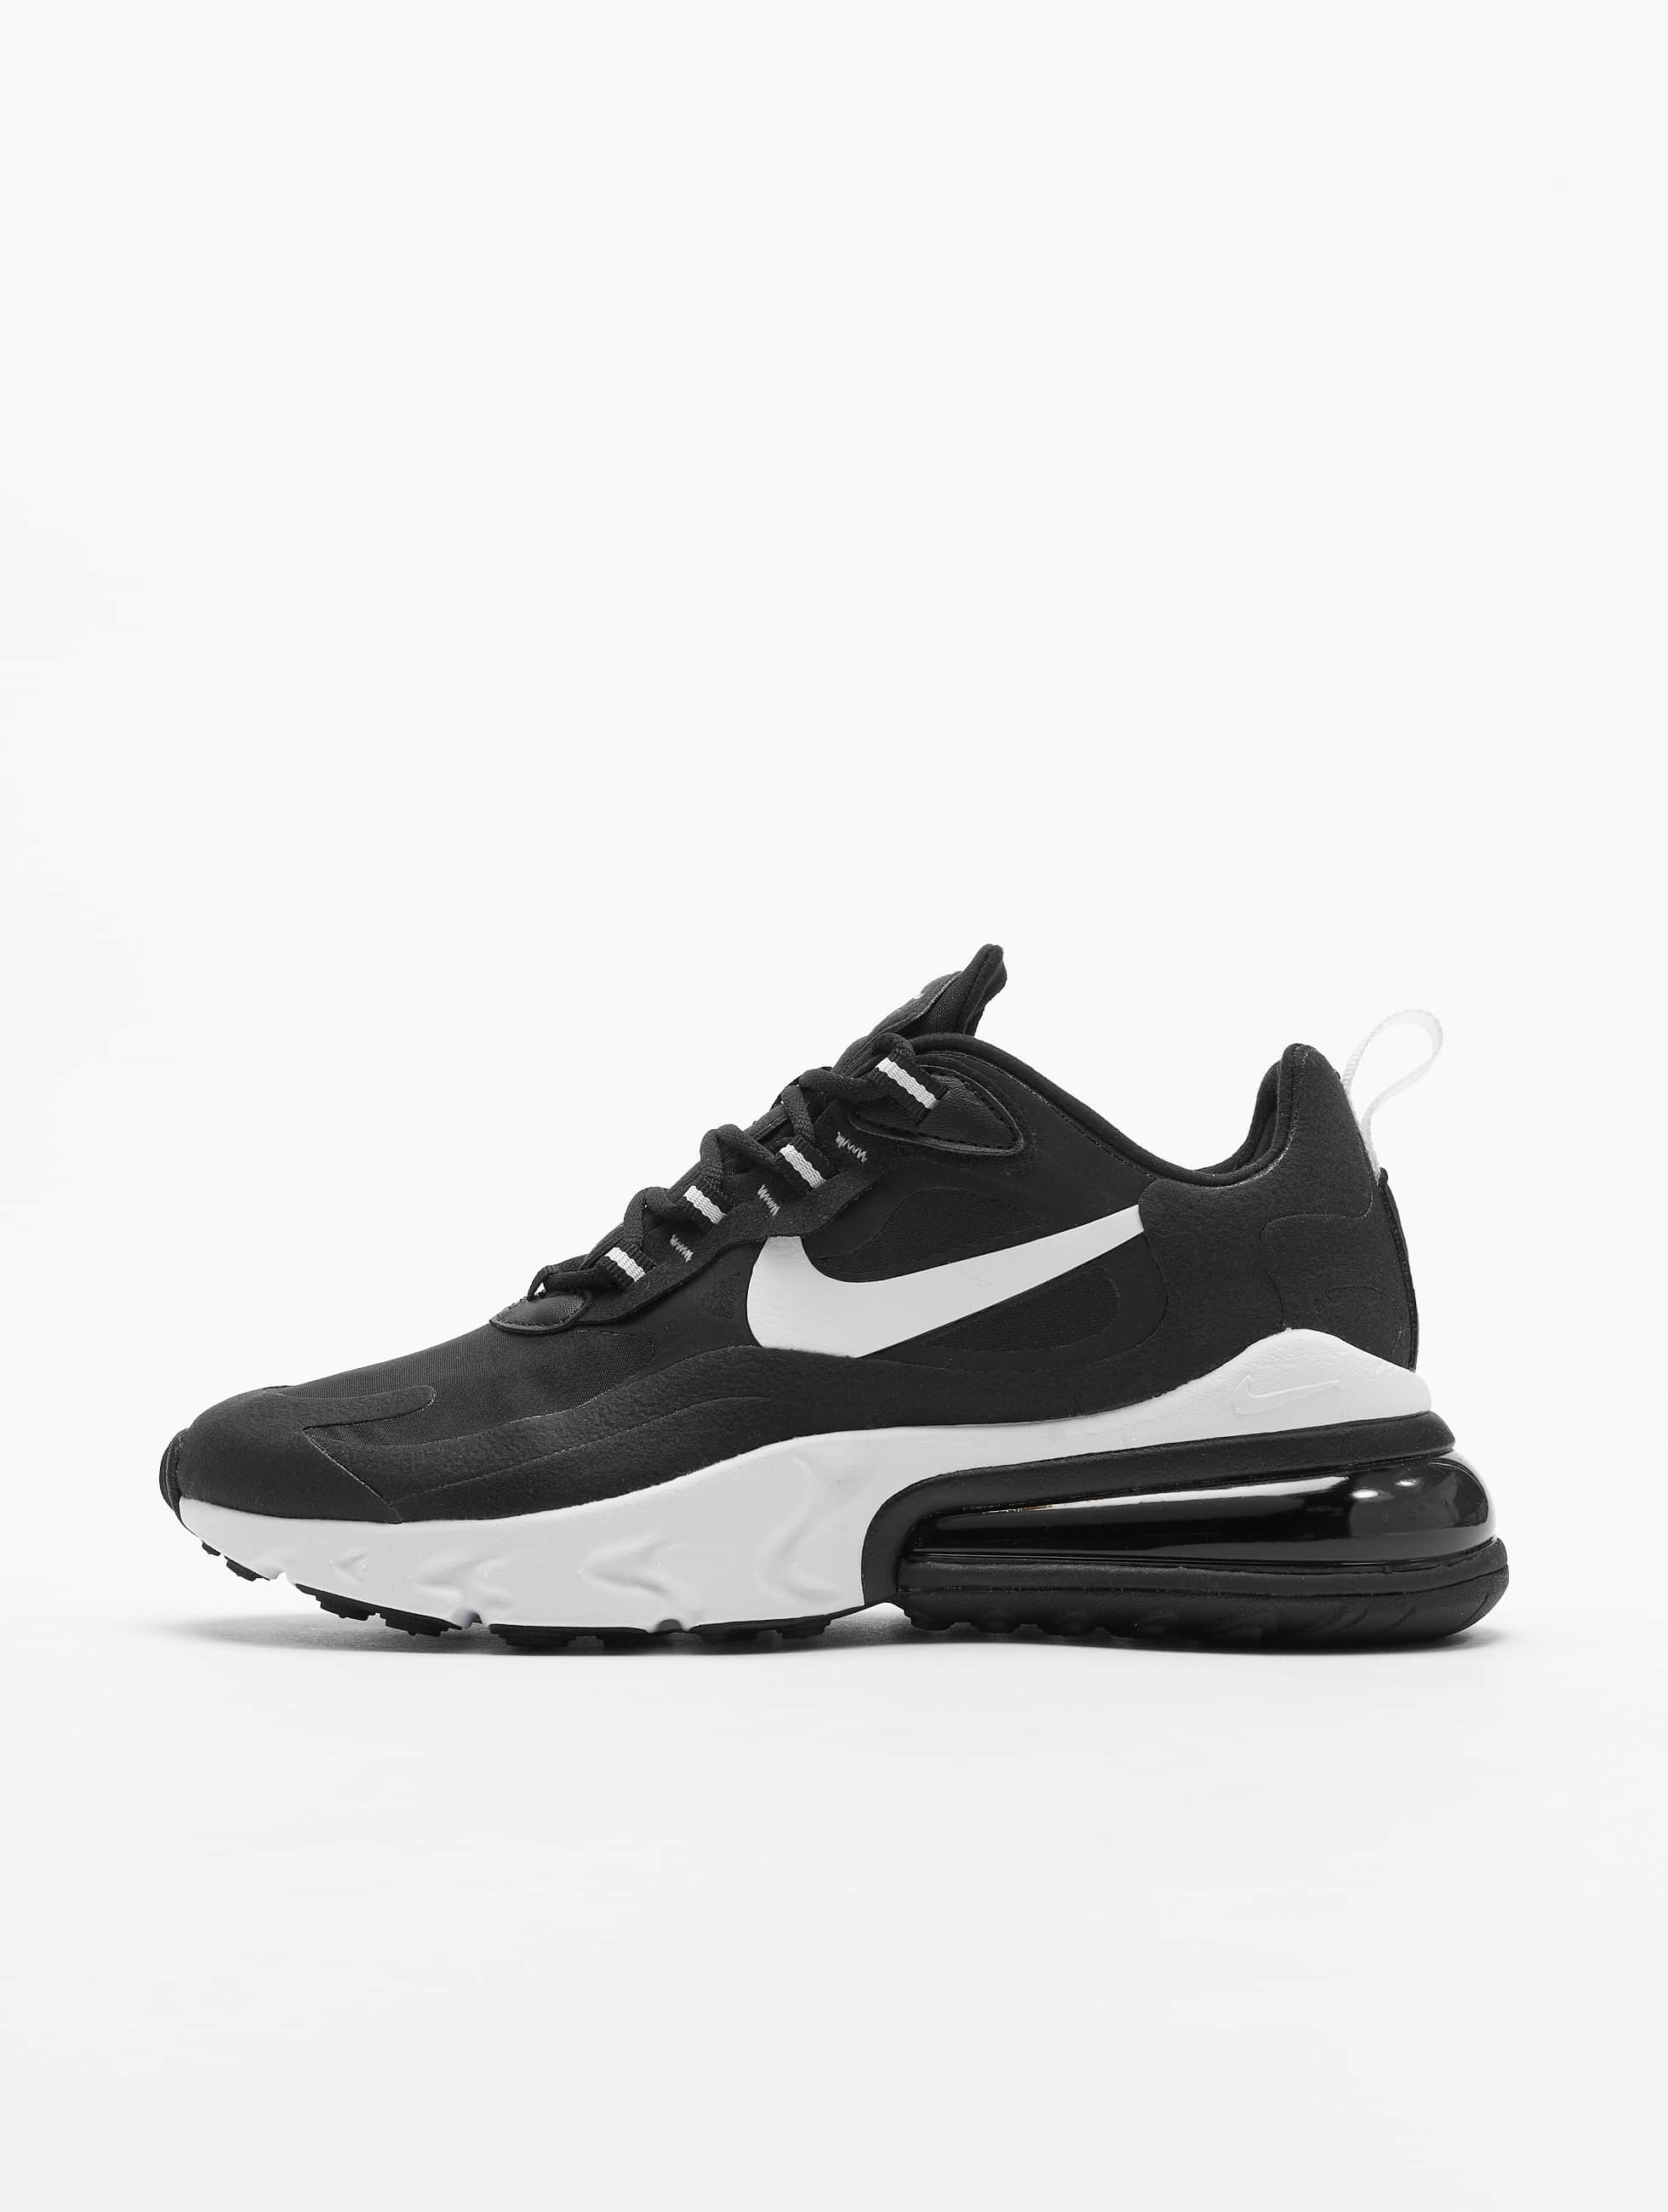 Nike Air Max 270 React Sneakers BlackWhiteBlack